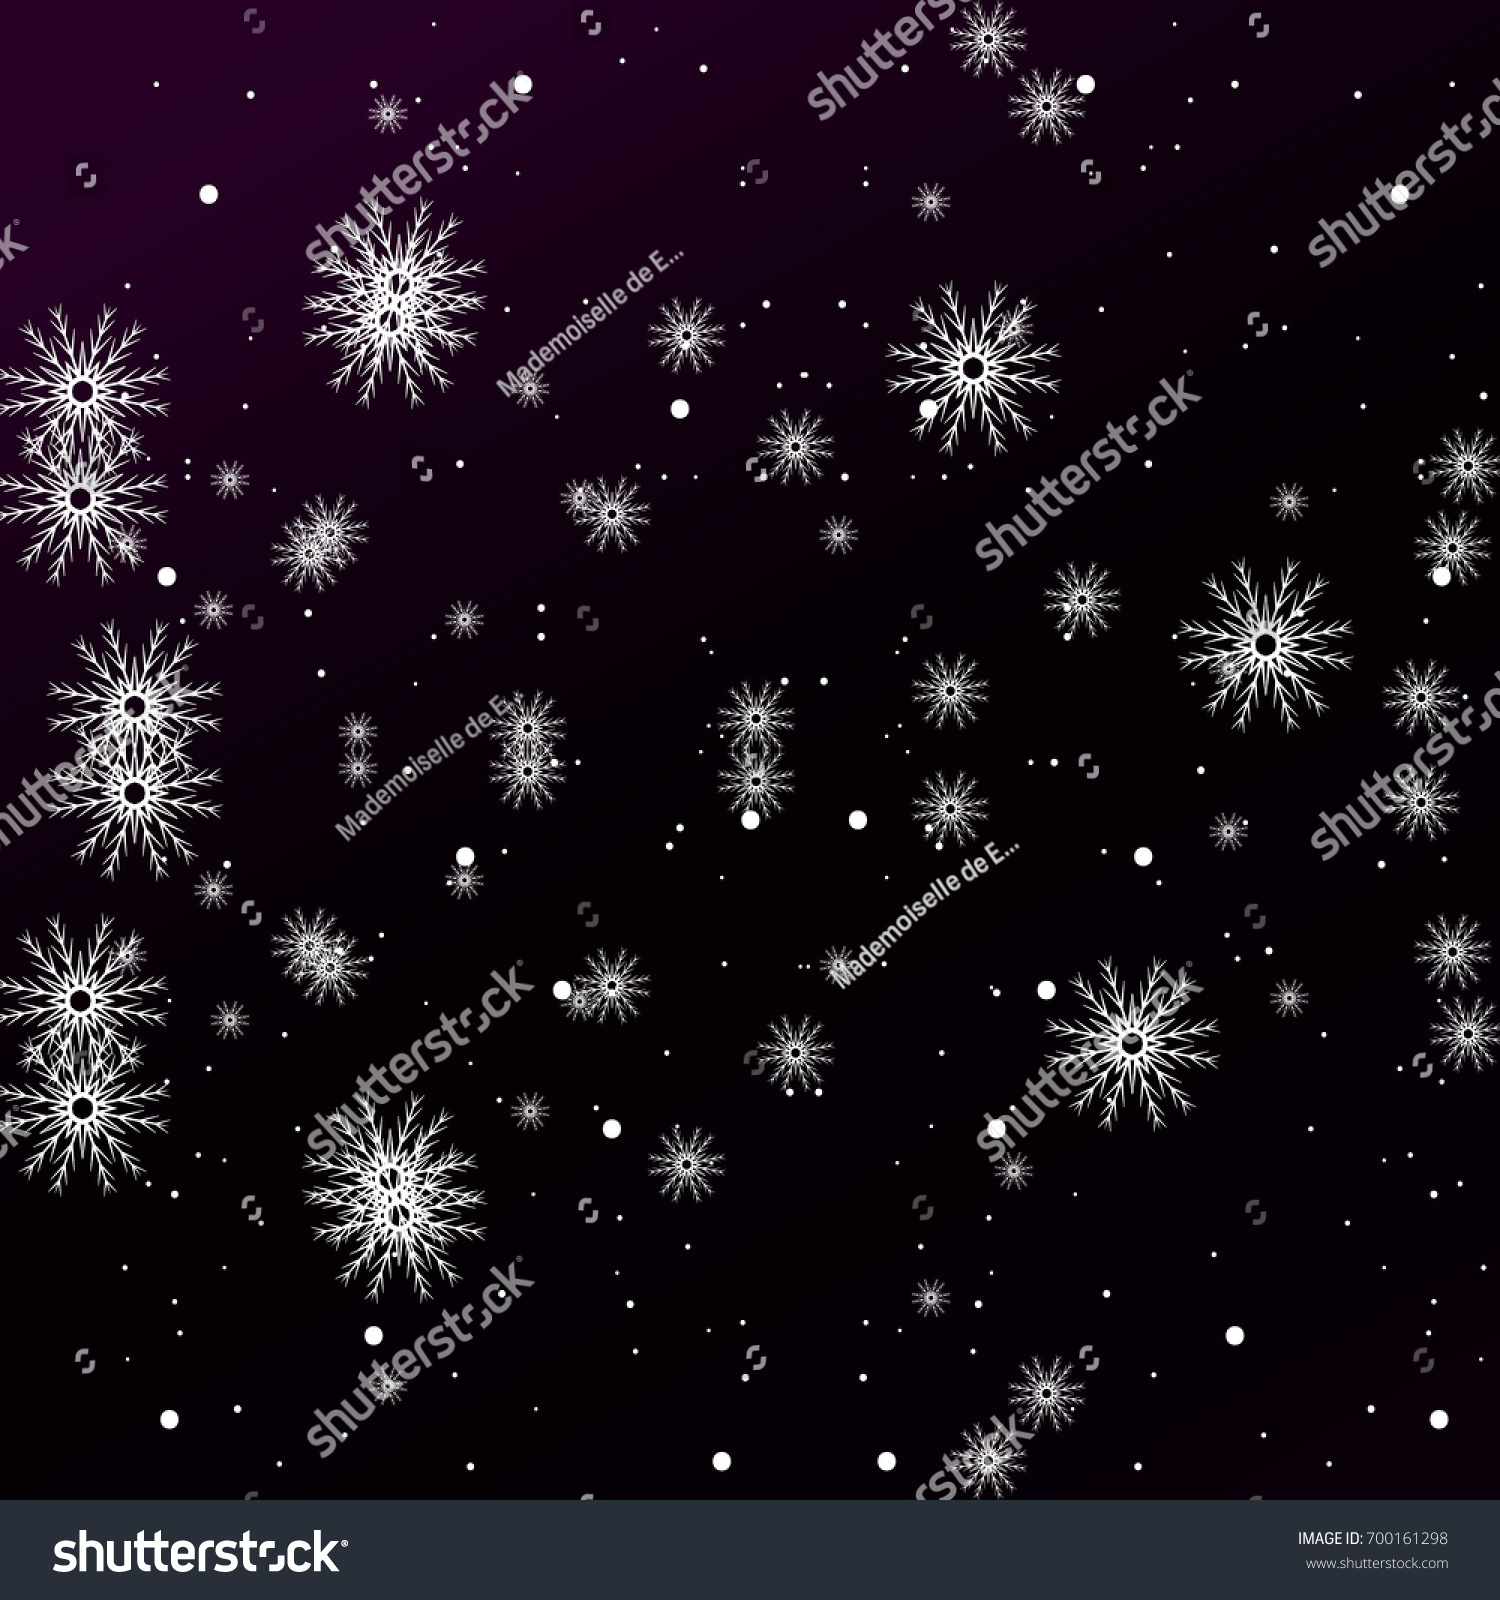 purple color new year background with snowflake and star vector illustration